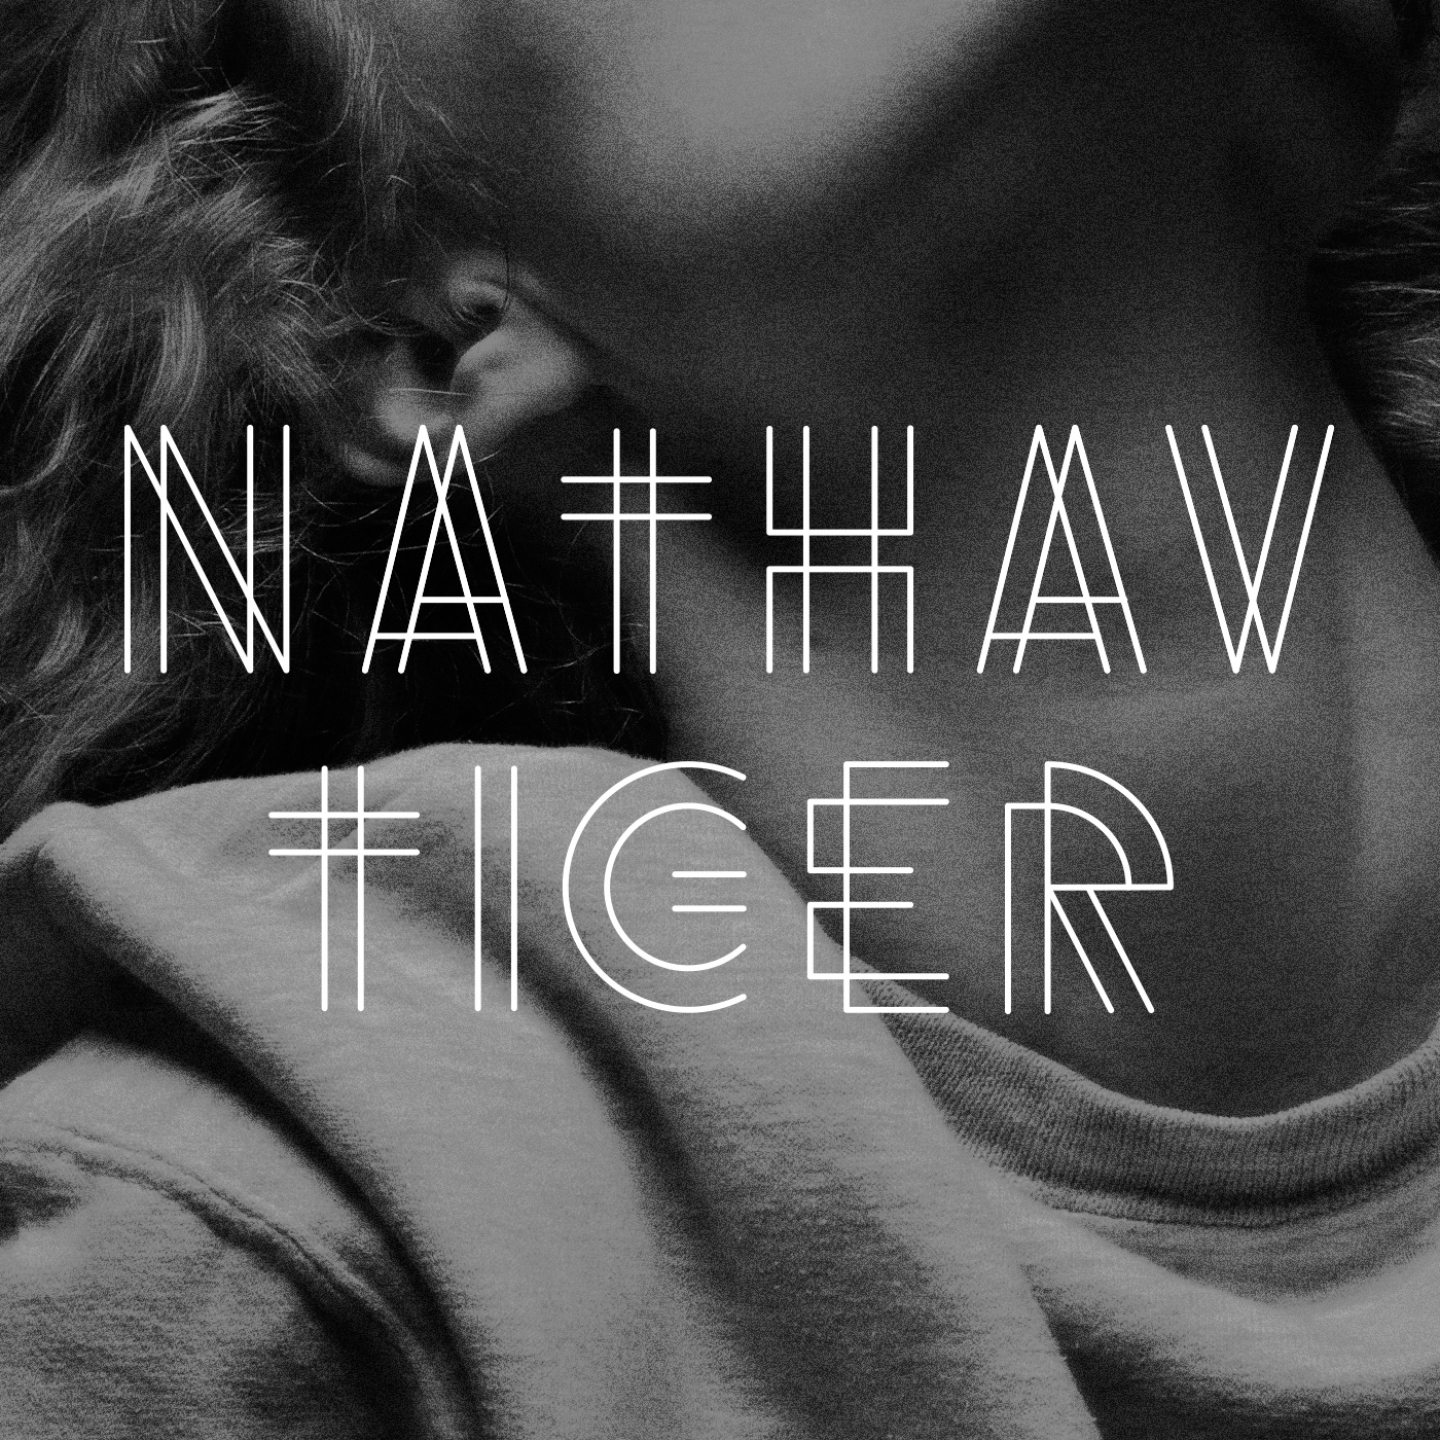 Nathav – 'Tiger' (Single)